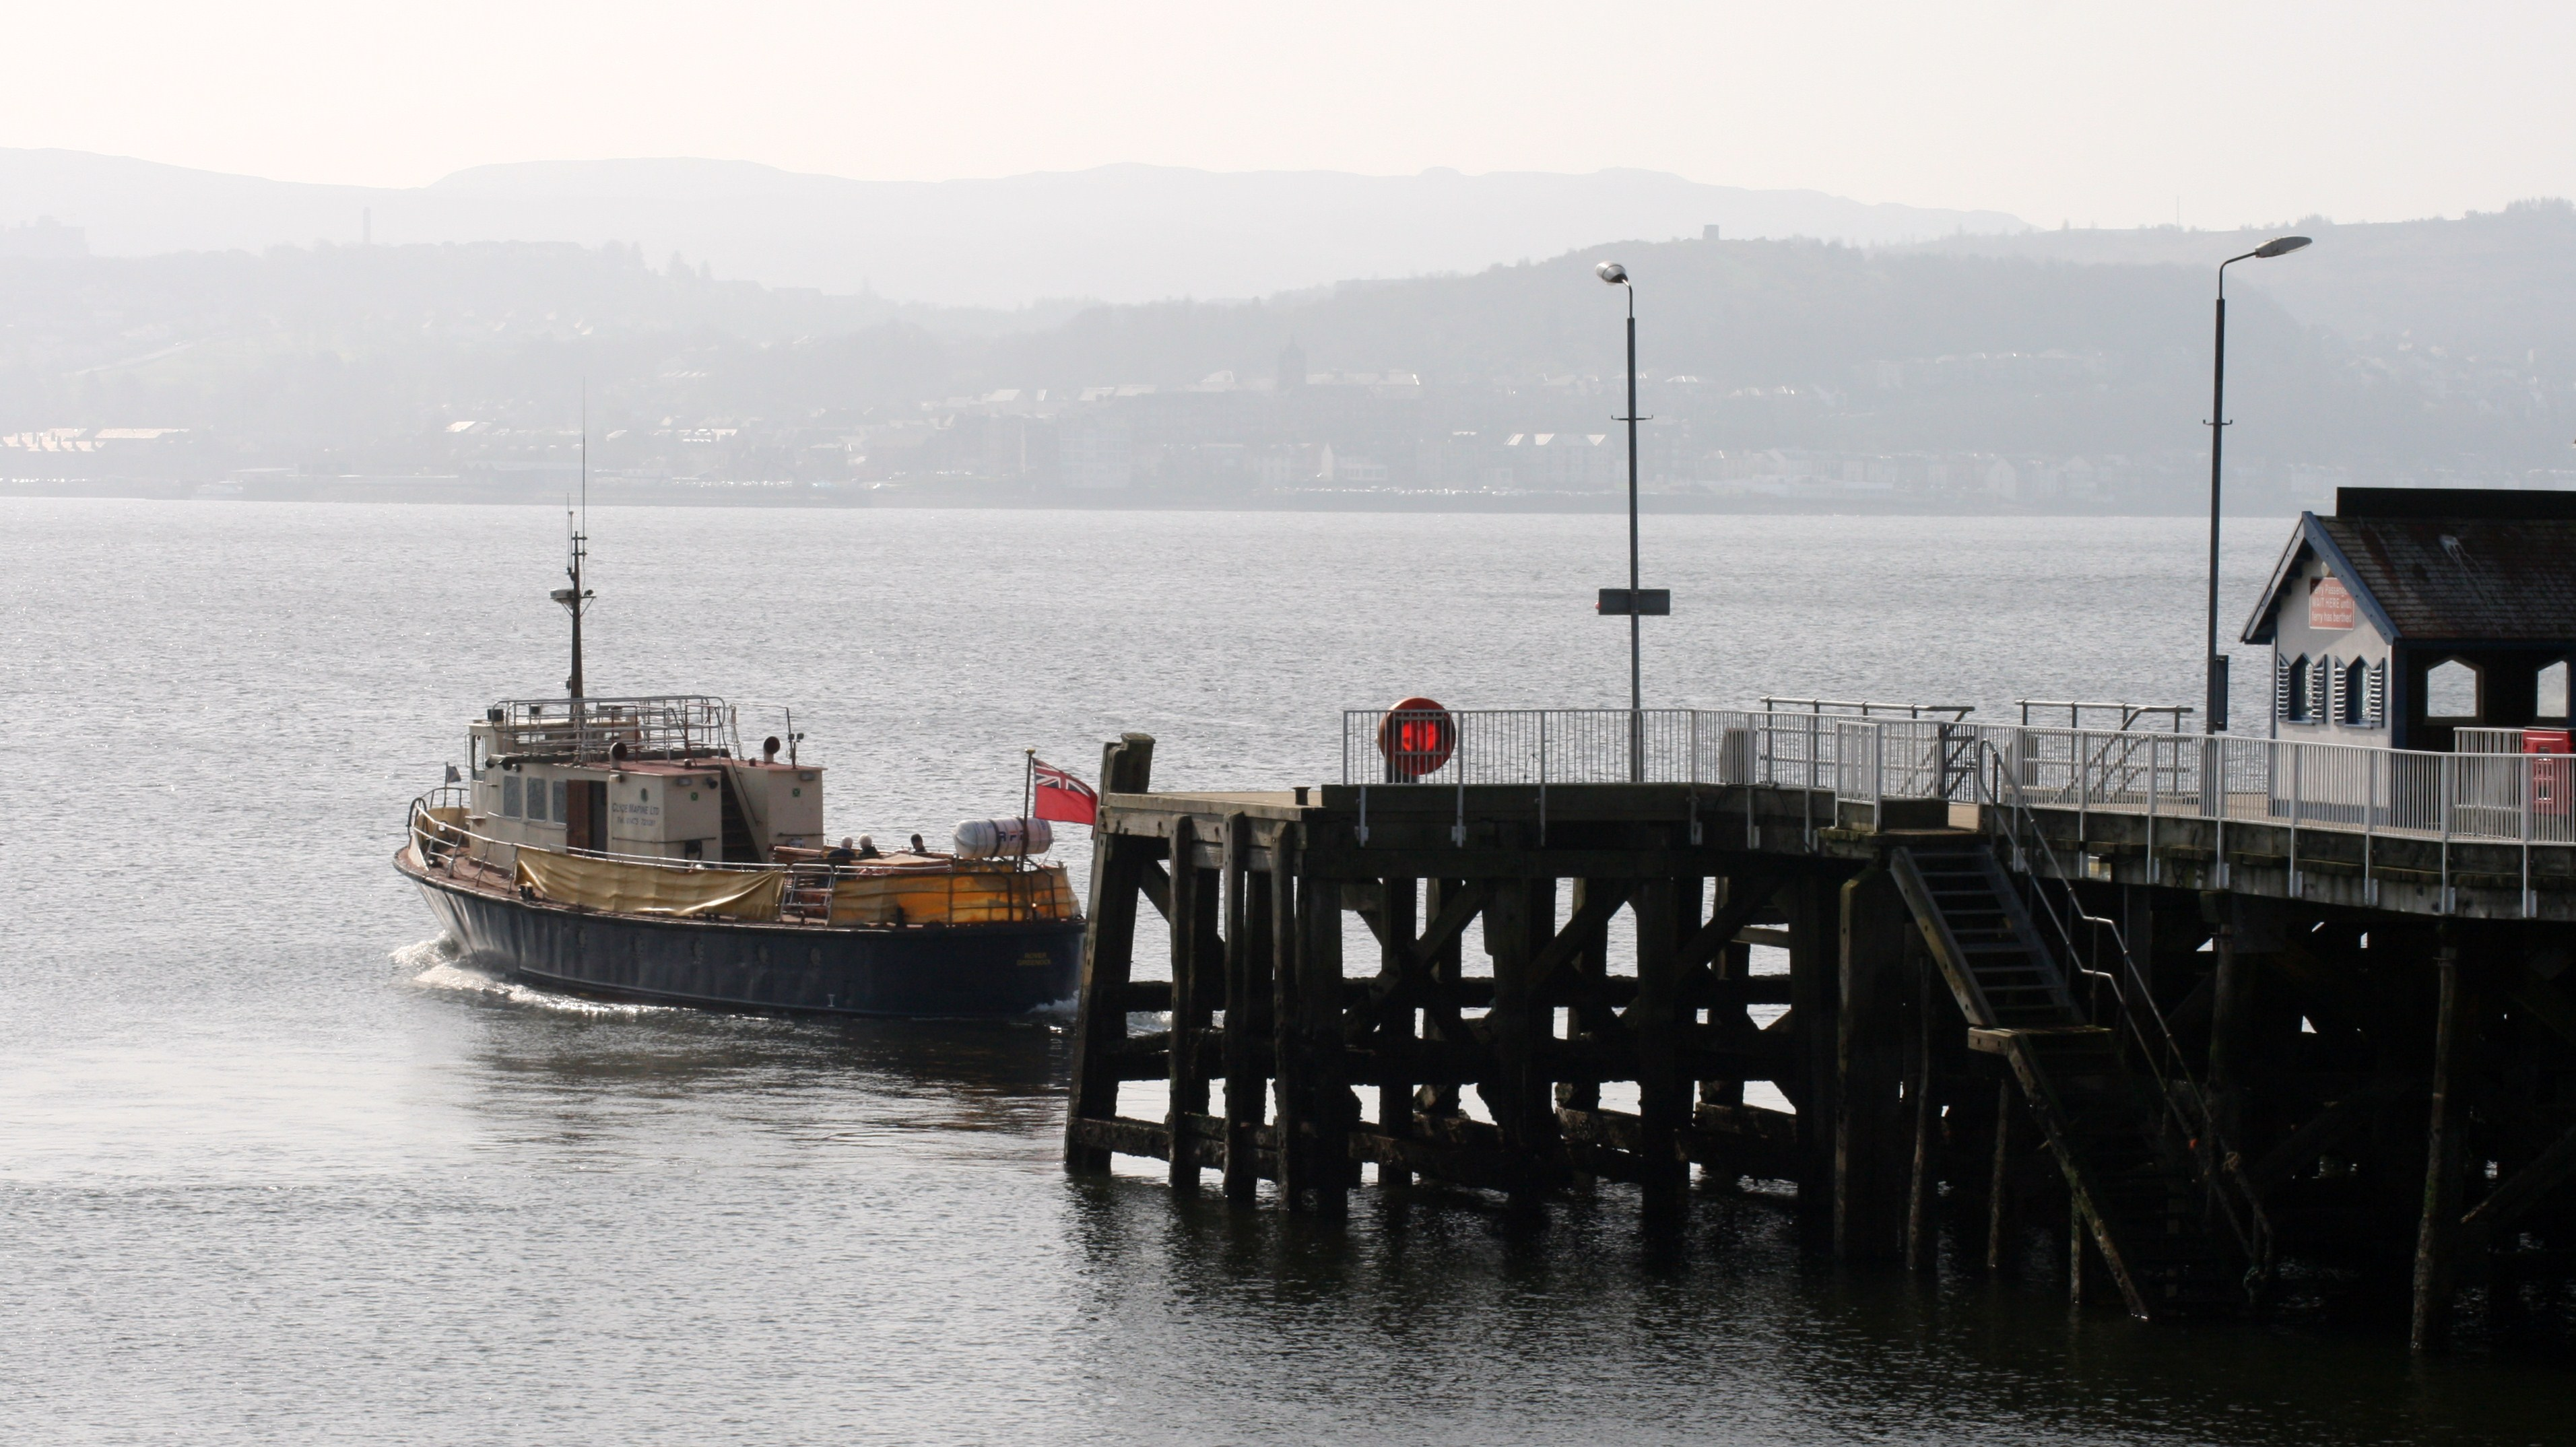 Rover leaving Kilcreggan (Ships of CalMac)